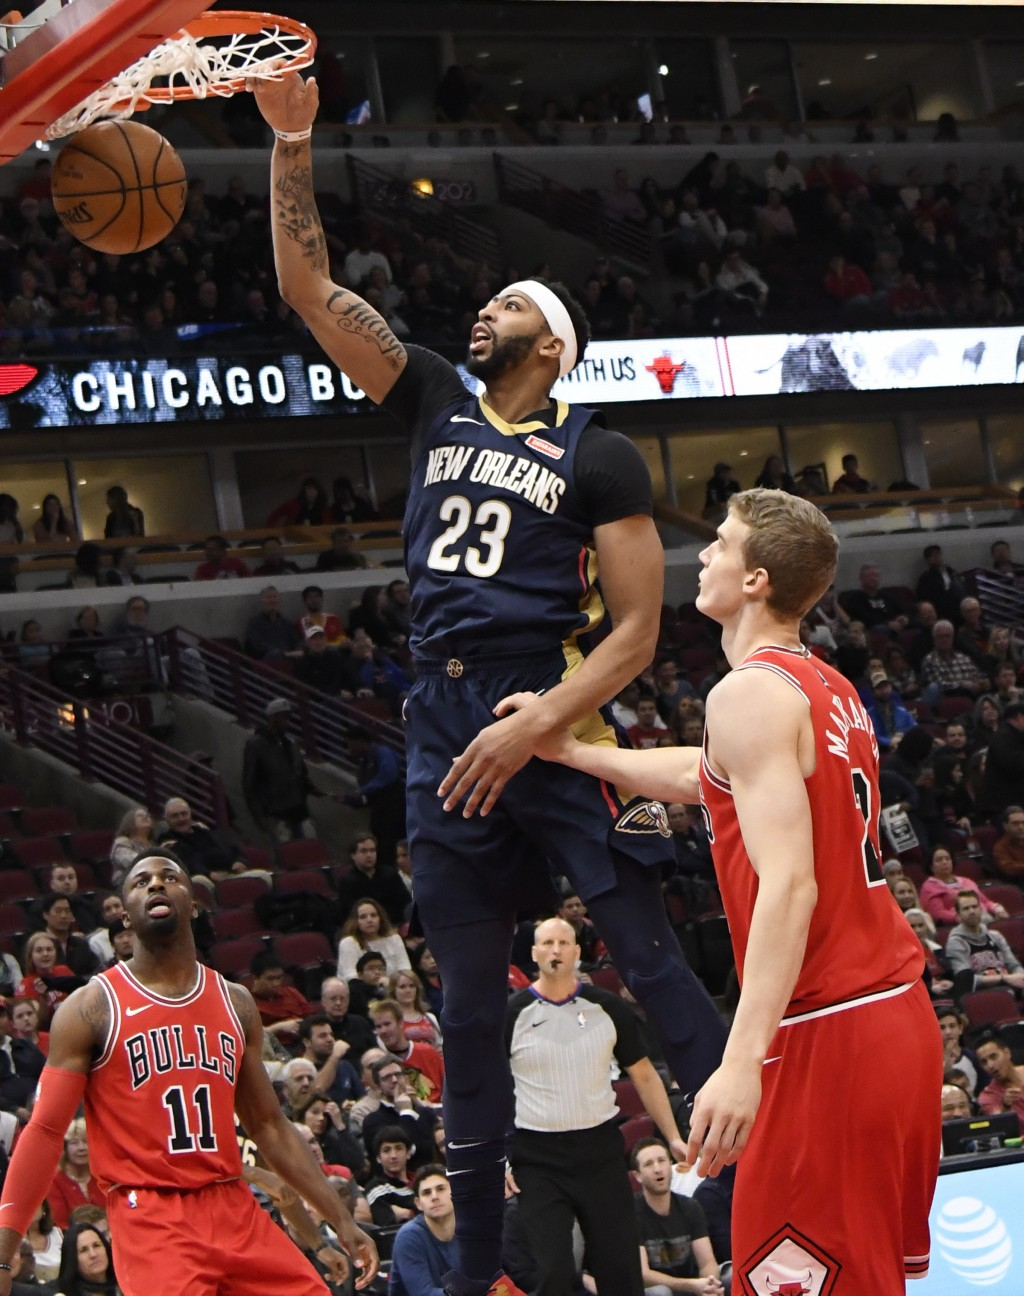 New Orleans Pelicans forward Anthony Davis (23) dunks the ball as Chicago Bulls guard David Nwaba (11) and forward Lauri Markkanen (24) watch during t...